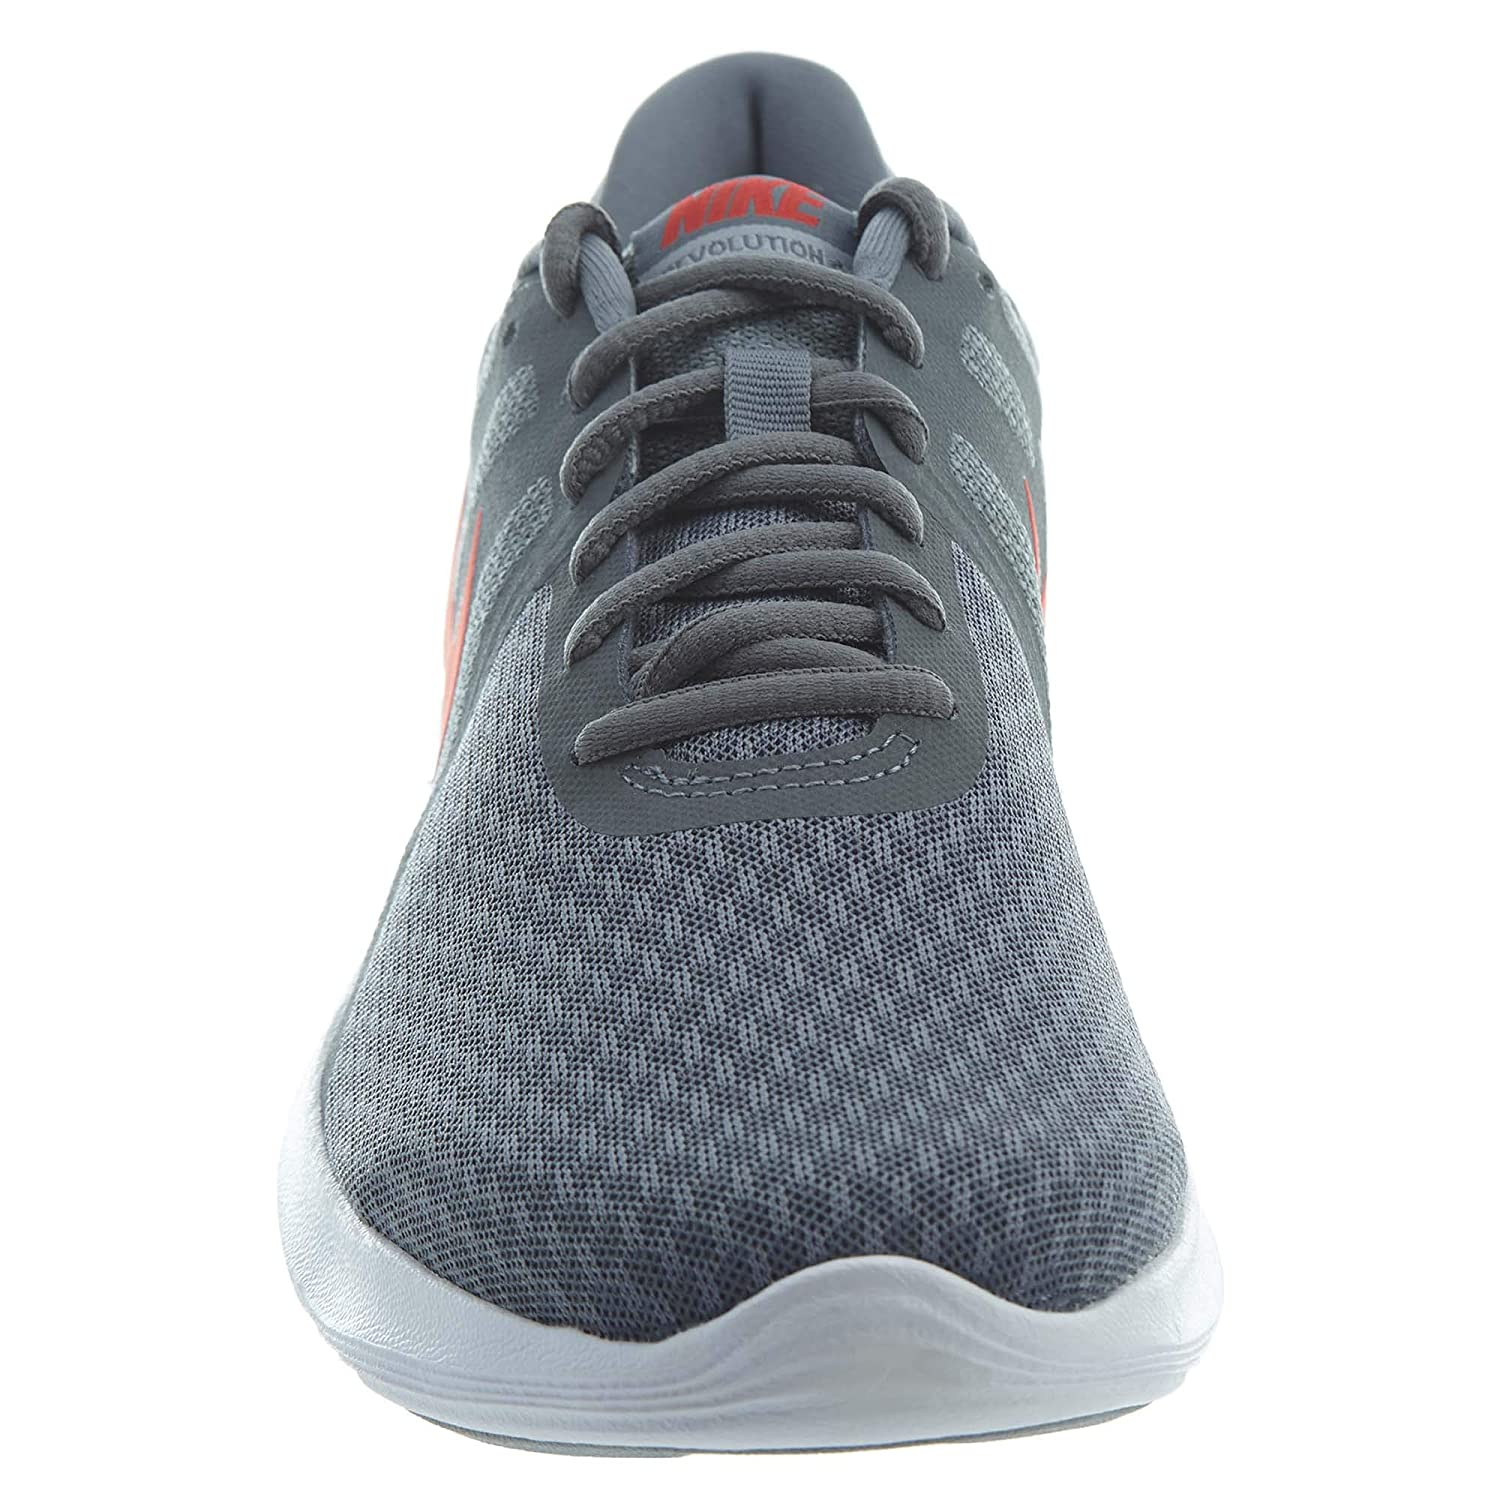 9904c3facbaf NIKE Men s Revolution 4 Cool Grey Habanero Red - Wolf Grey - White Running  Shoes 908988-013  Buy Online at Low Prices in India - Amazon.in